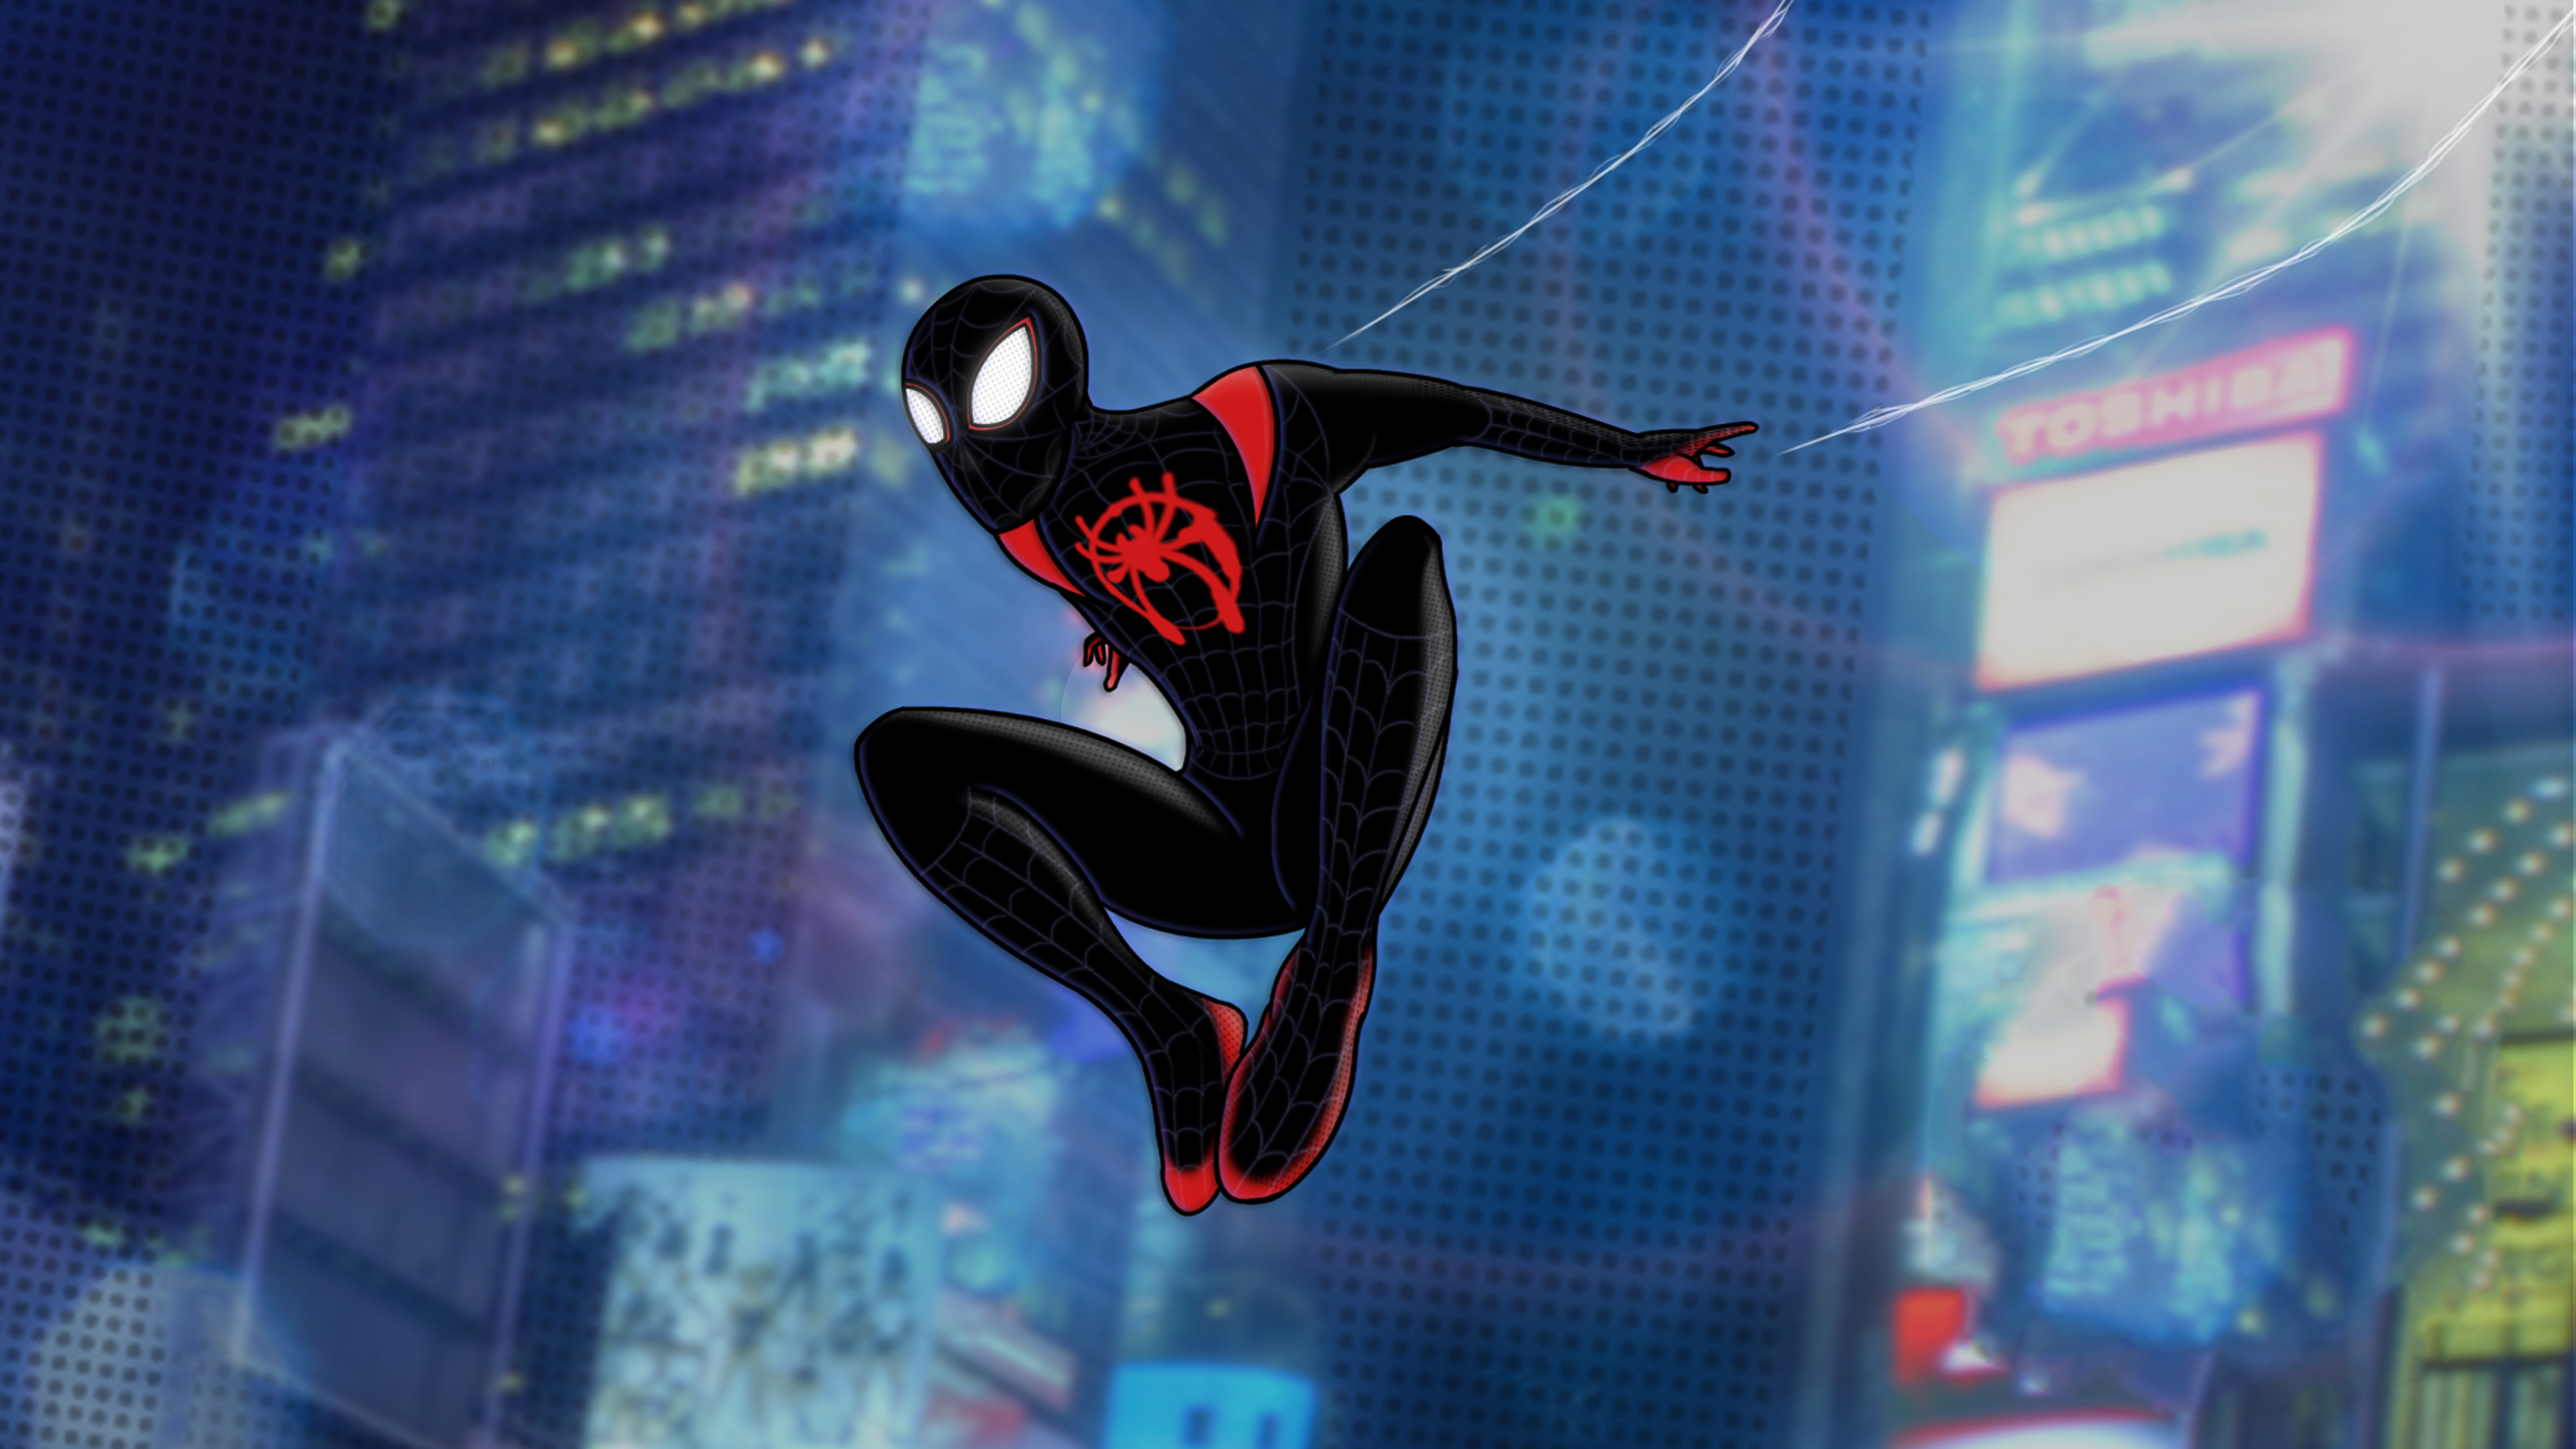 Wallpaper 4k Spiderman Miles Morales Digital Artwork 4k Artist